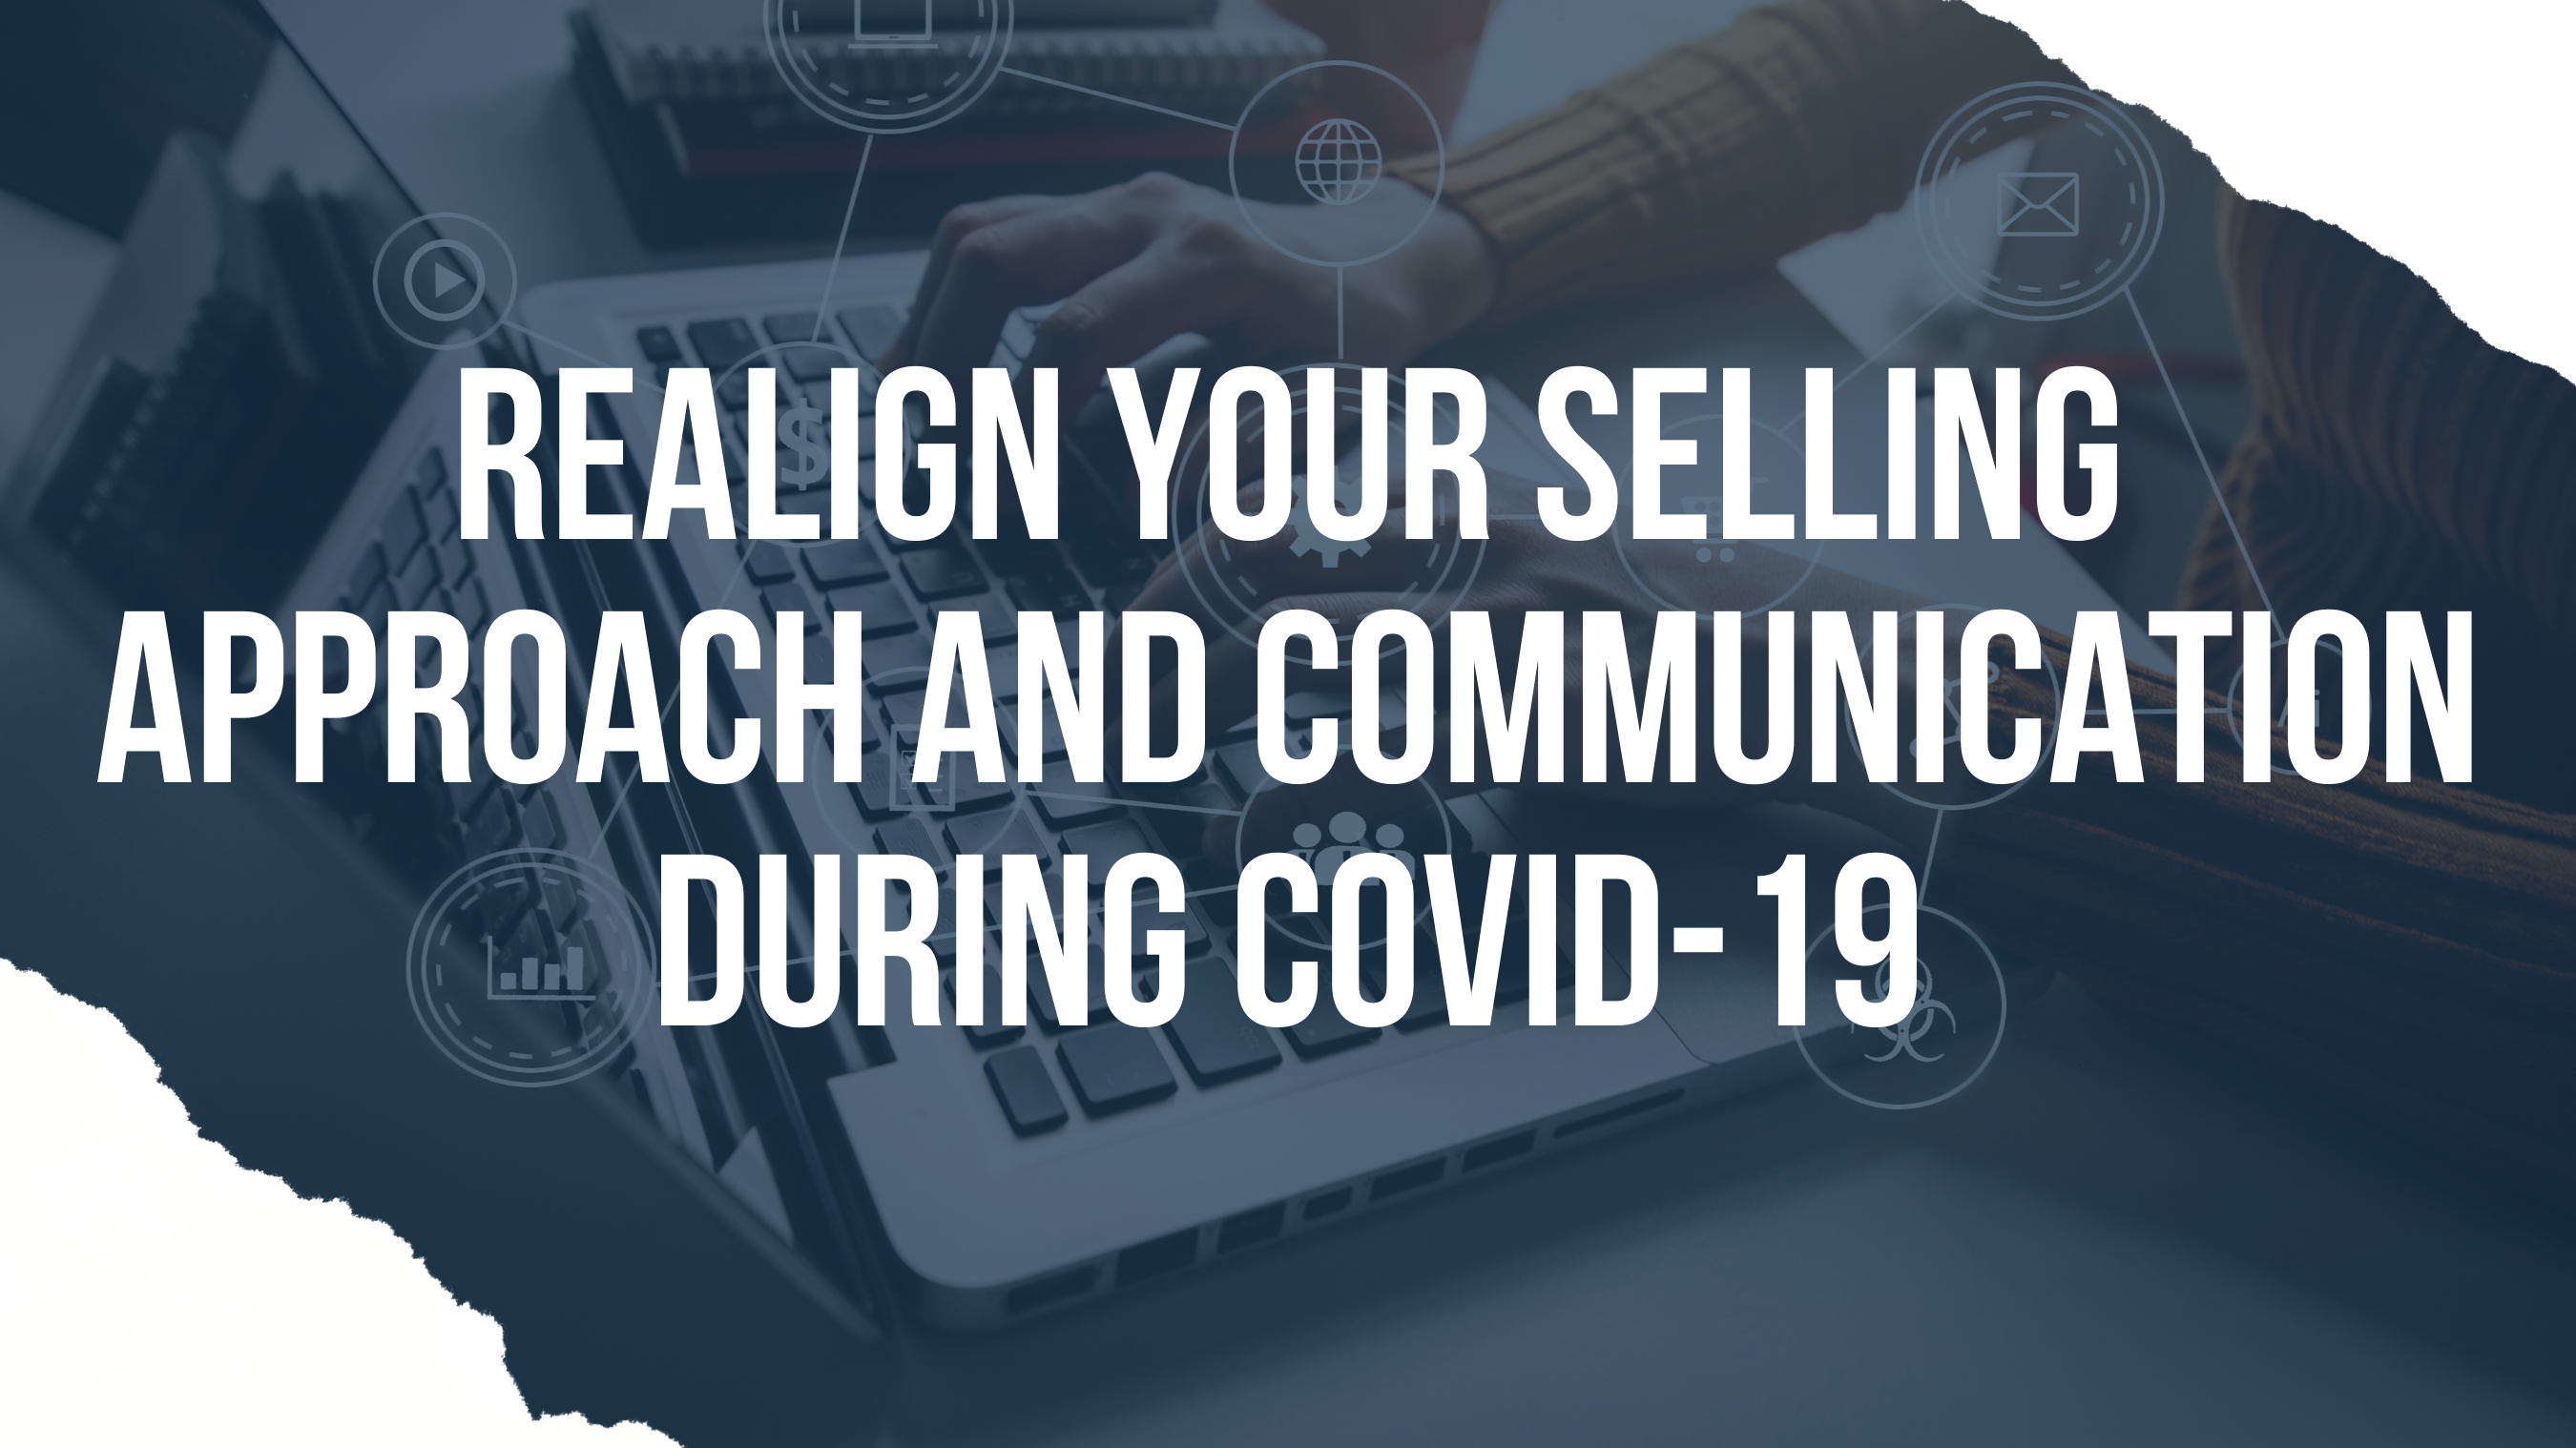 Realign Your Selling Approach and Communication During COVID-19